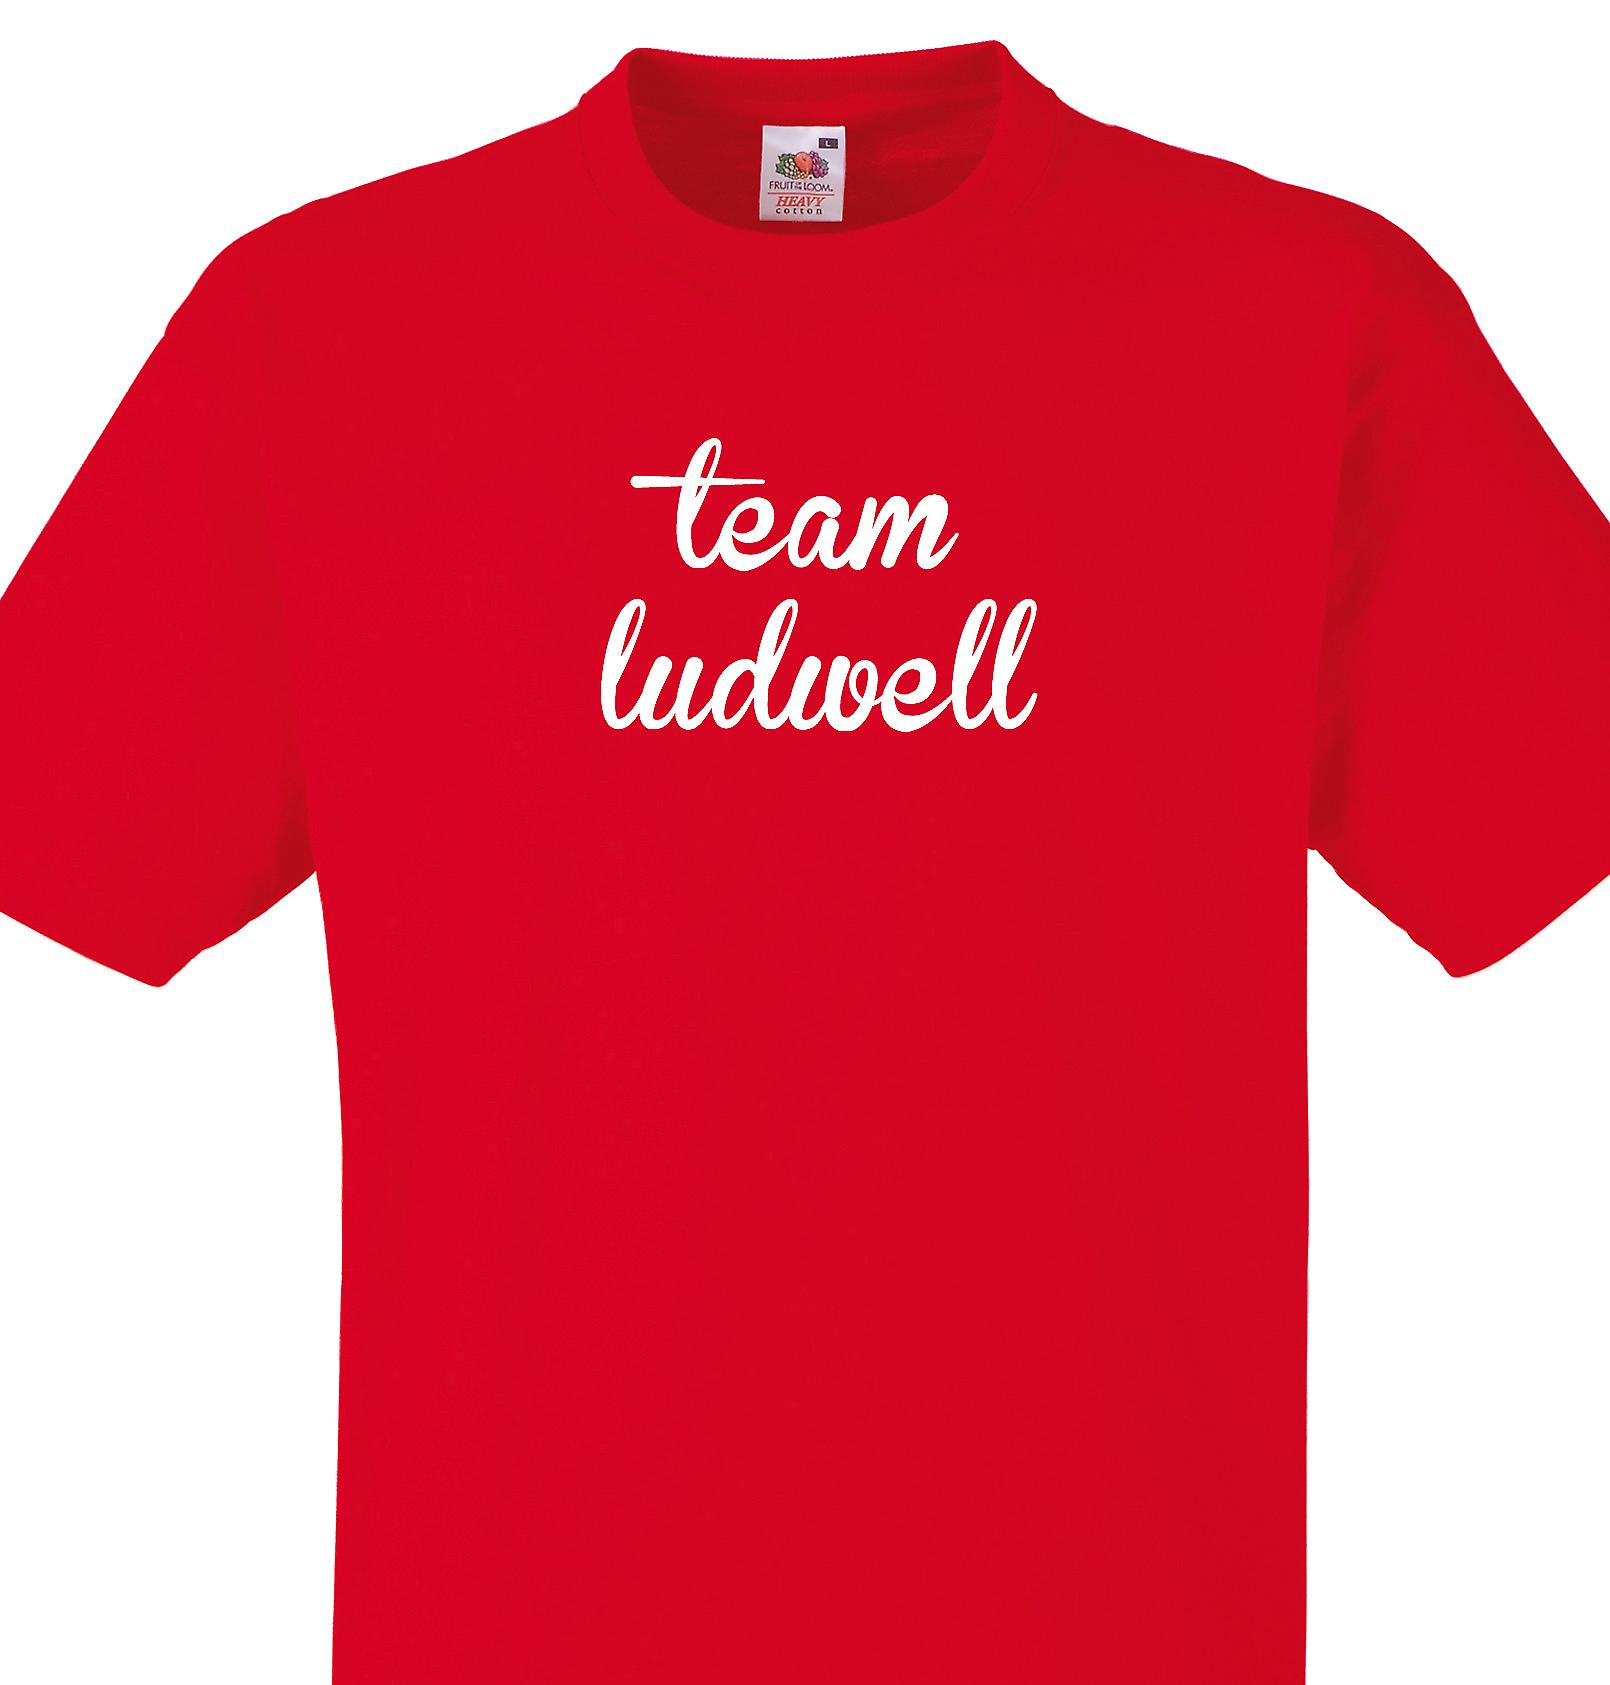 Team Ludwell Red T shirt